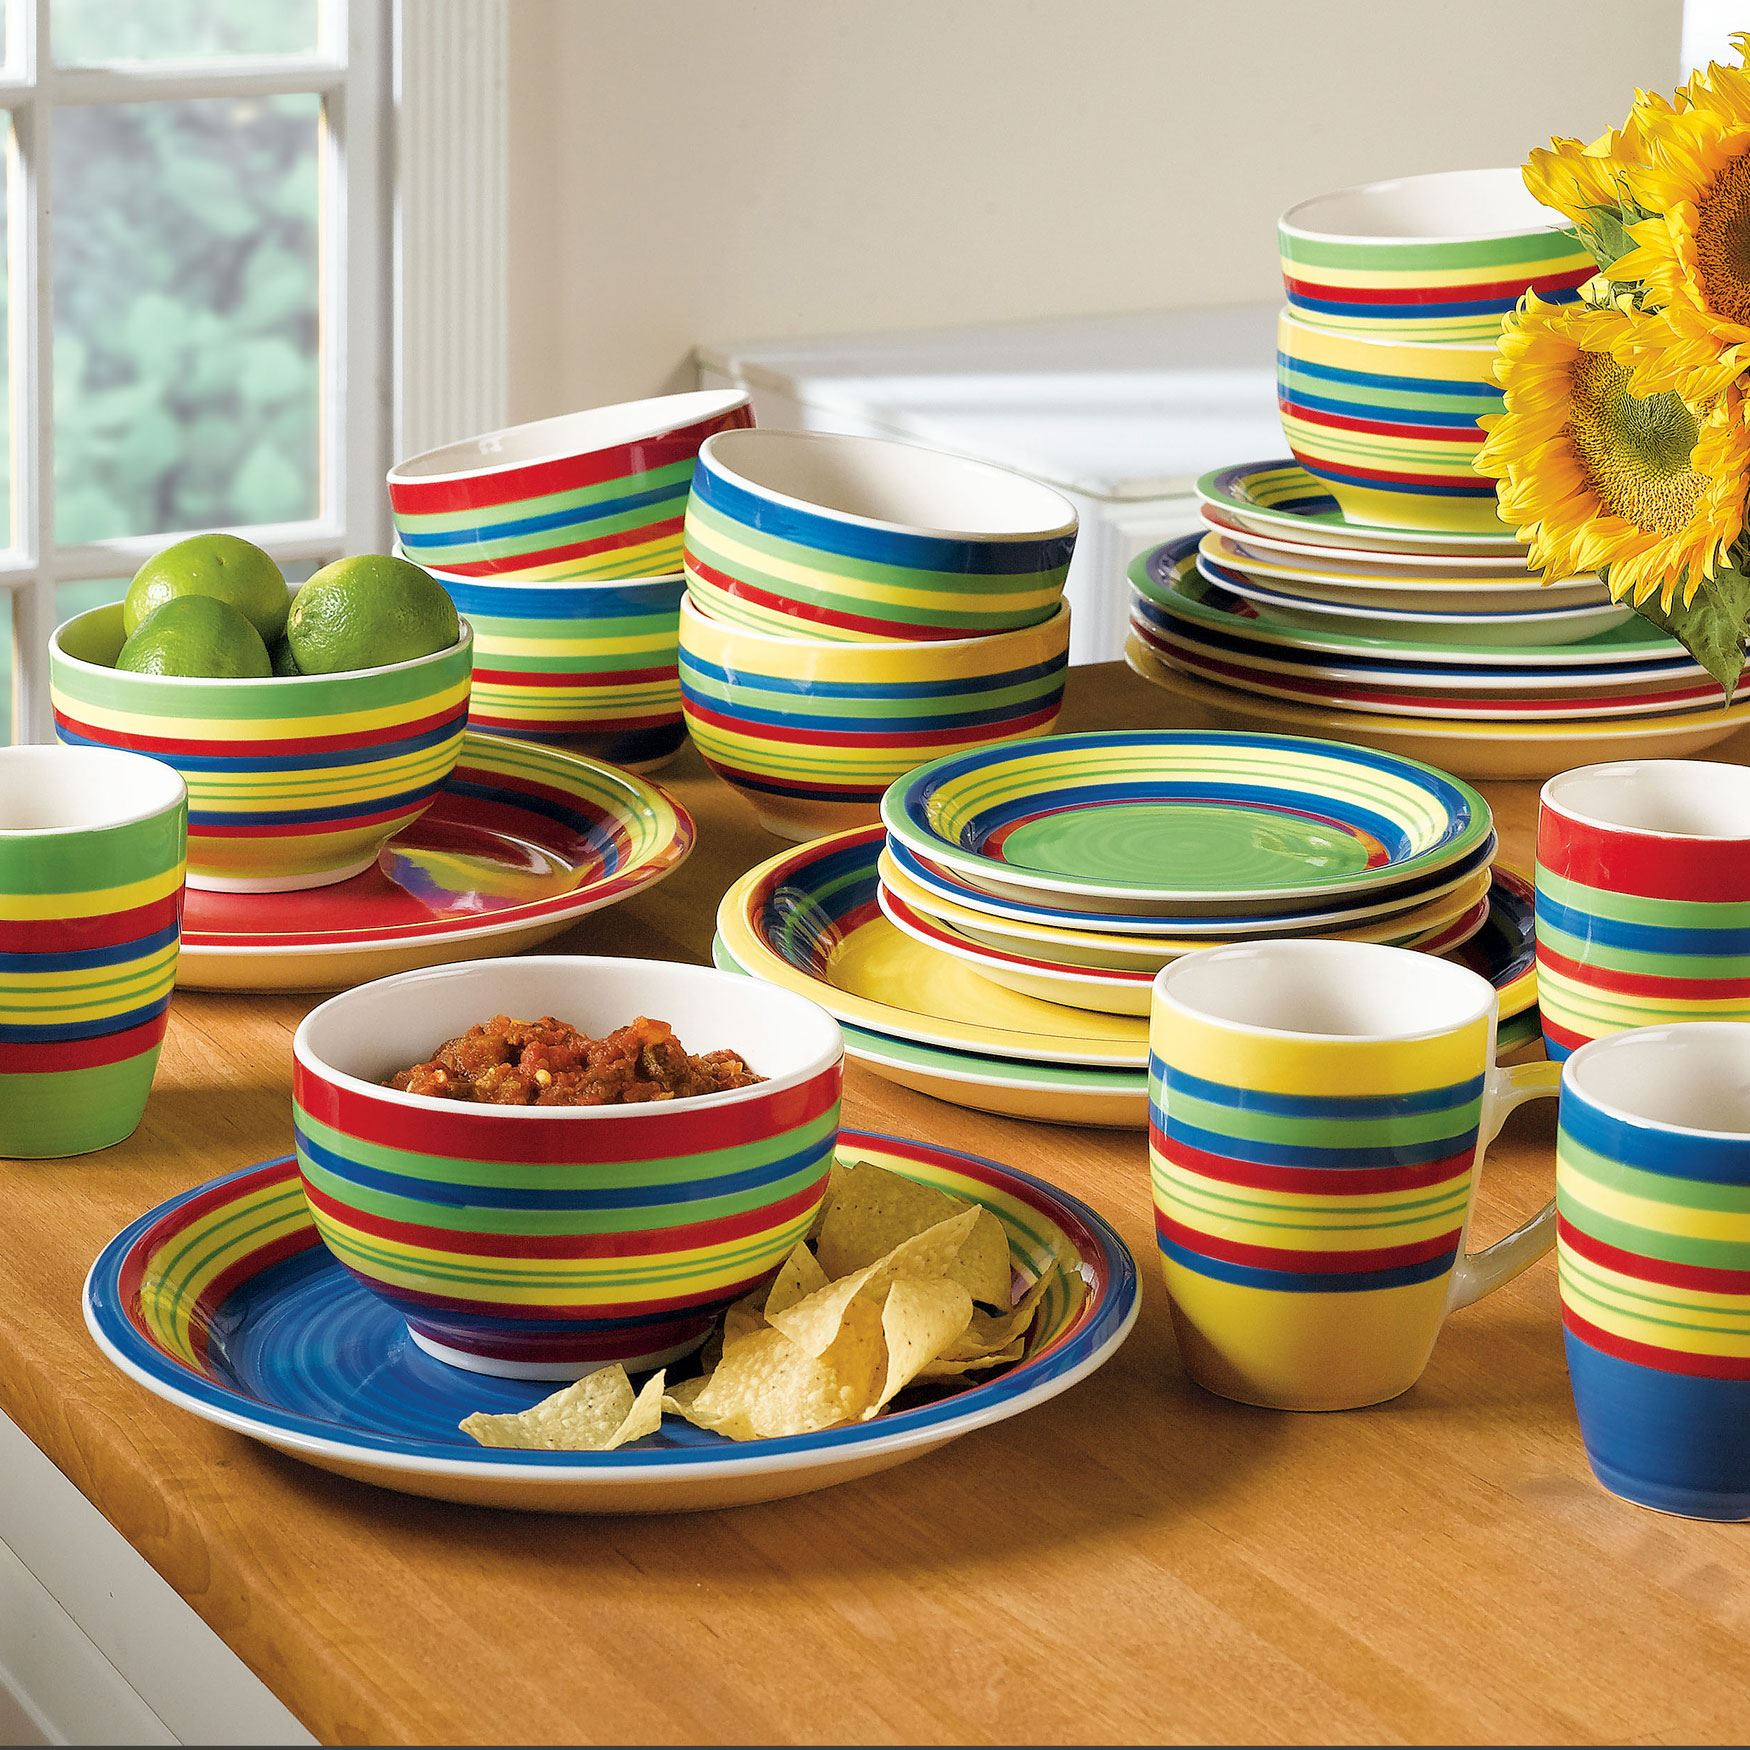 thomson pottery stoneware dinnerware set ikea dinnerware set stoneware dinnerware sets